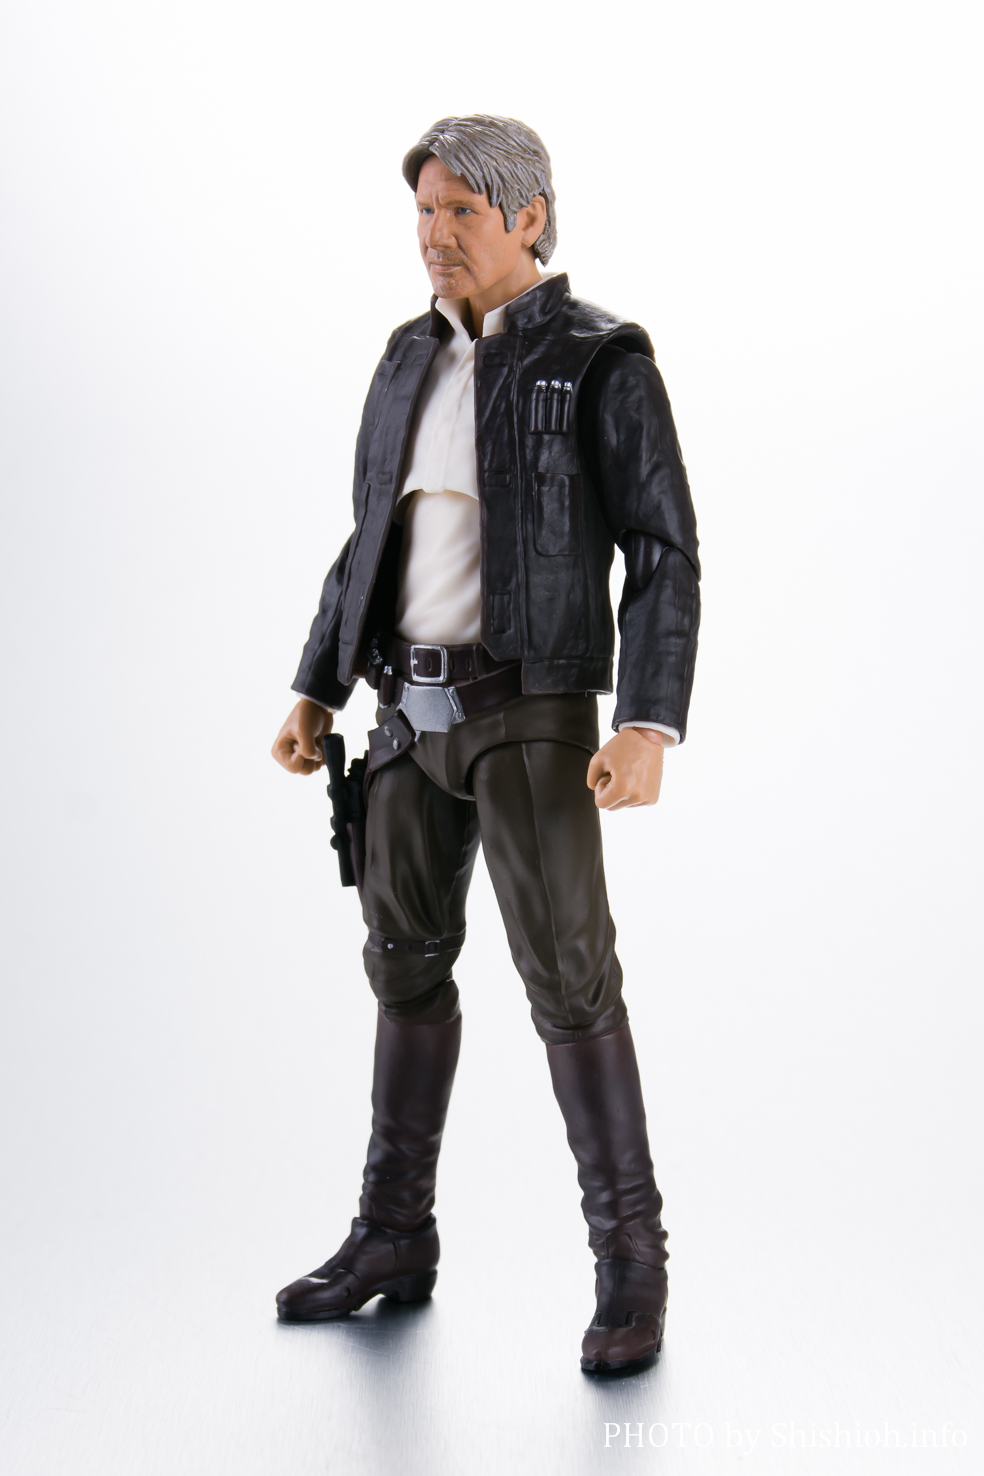 S.H.Figuarts ハン・ソロ(STAR WARS: The Force Awakens)